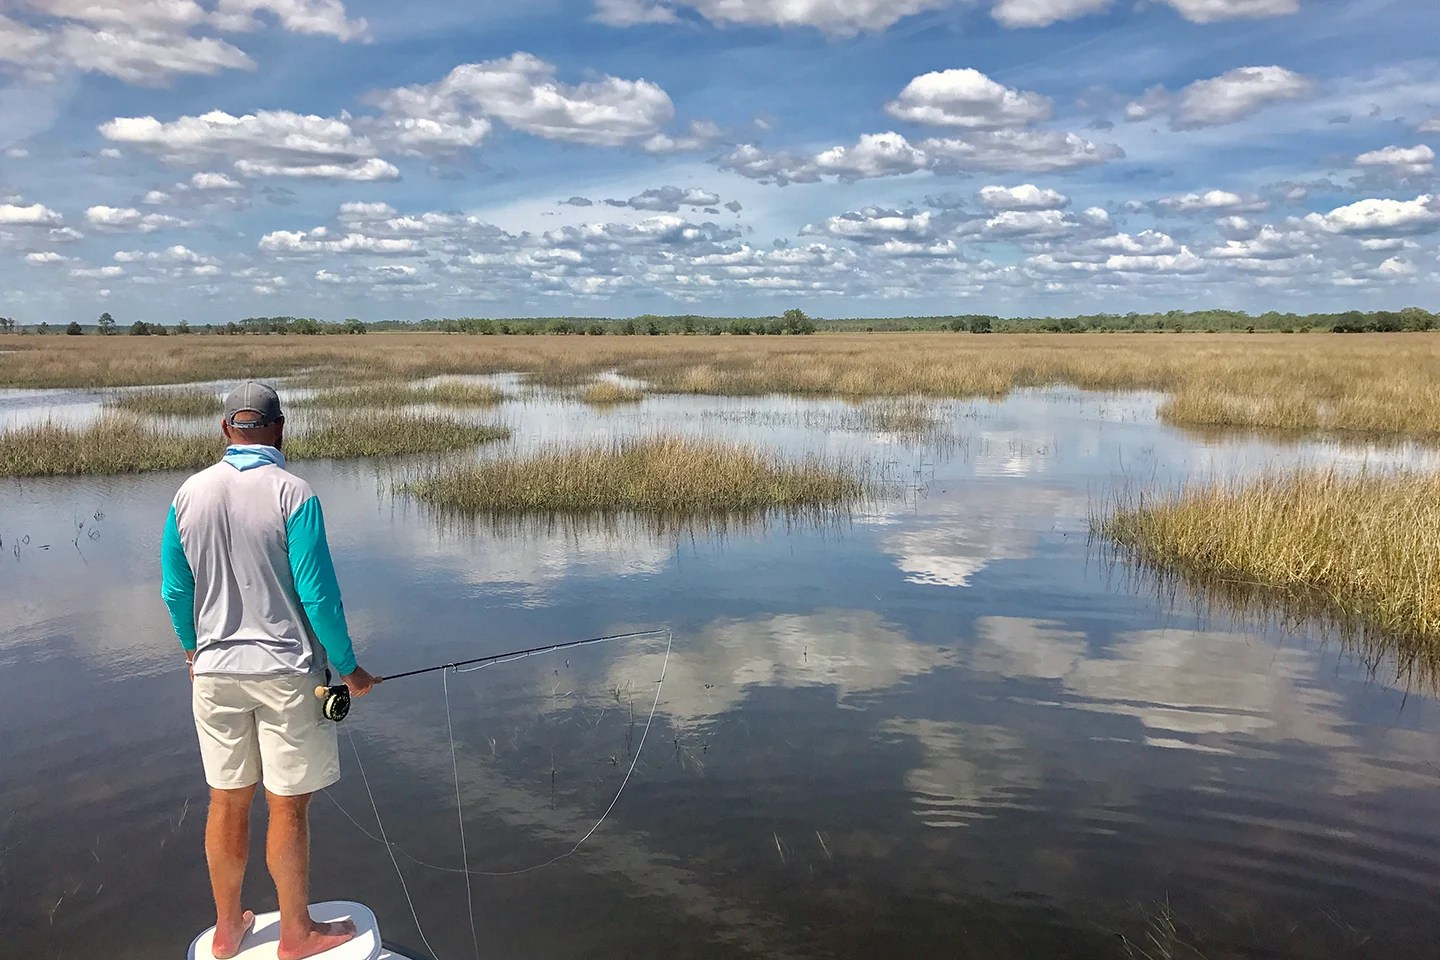 A fly fisherman standing at the front of a boat with shallow flats and sea grasses extending into the distance